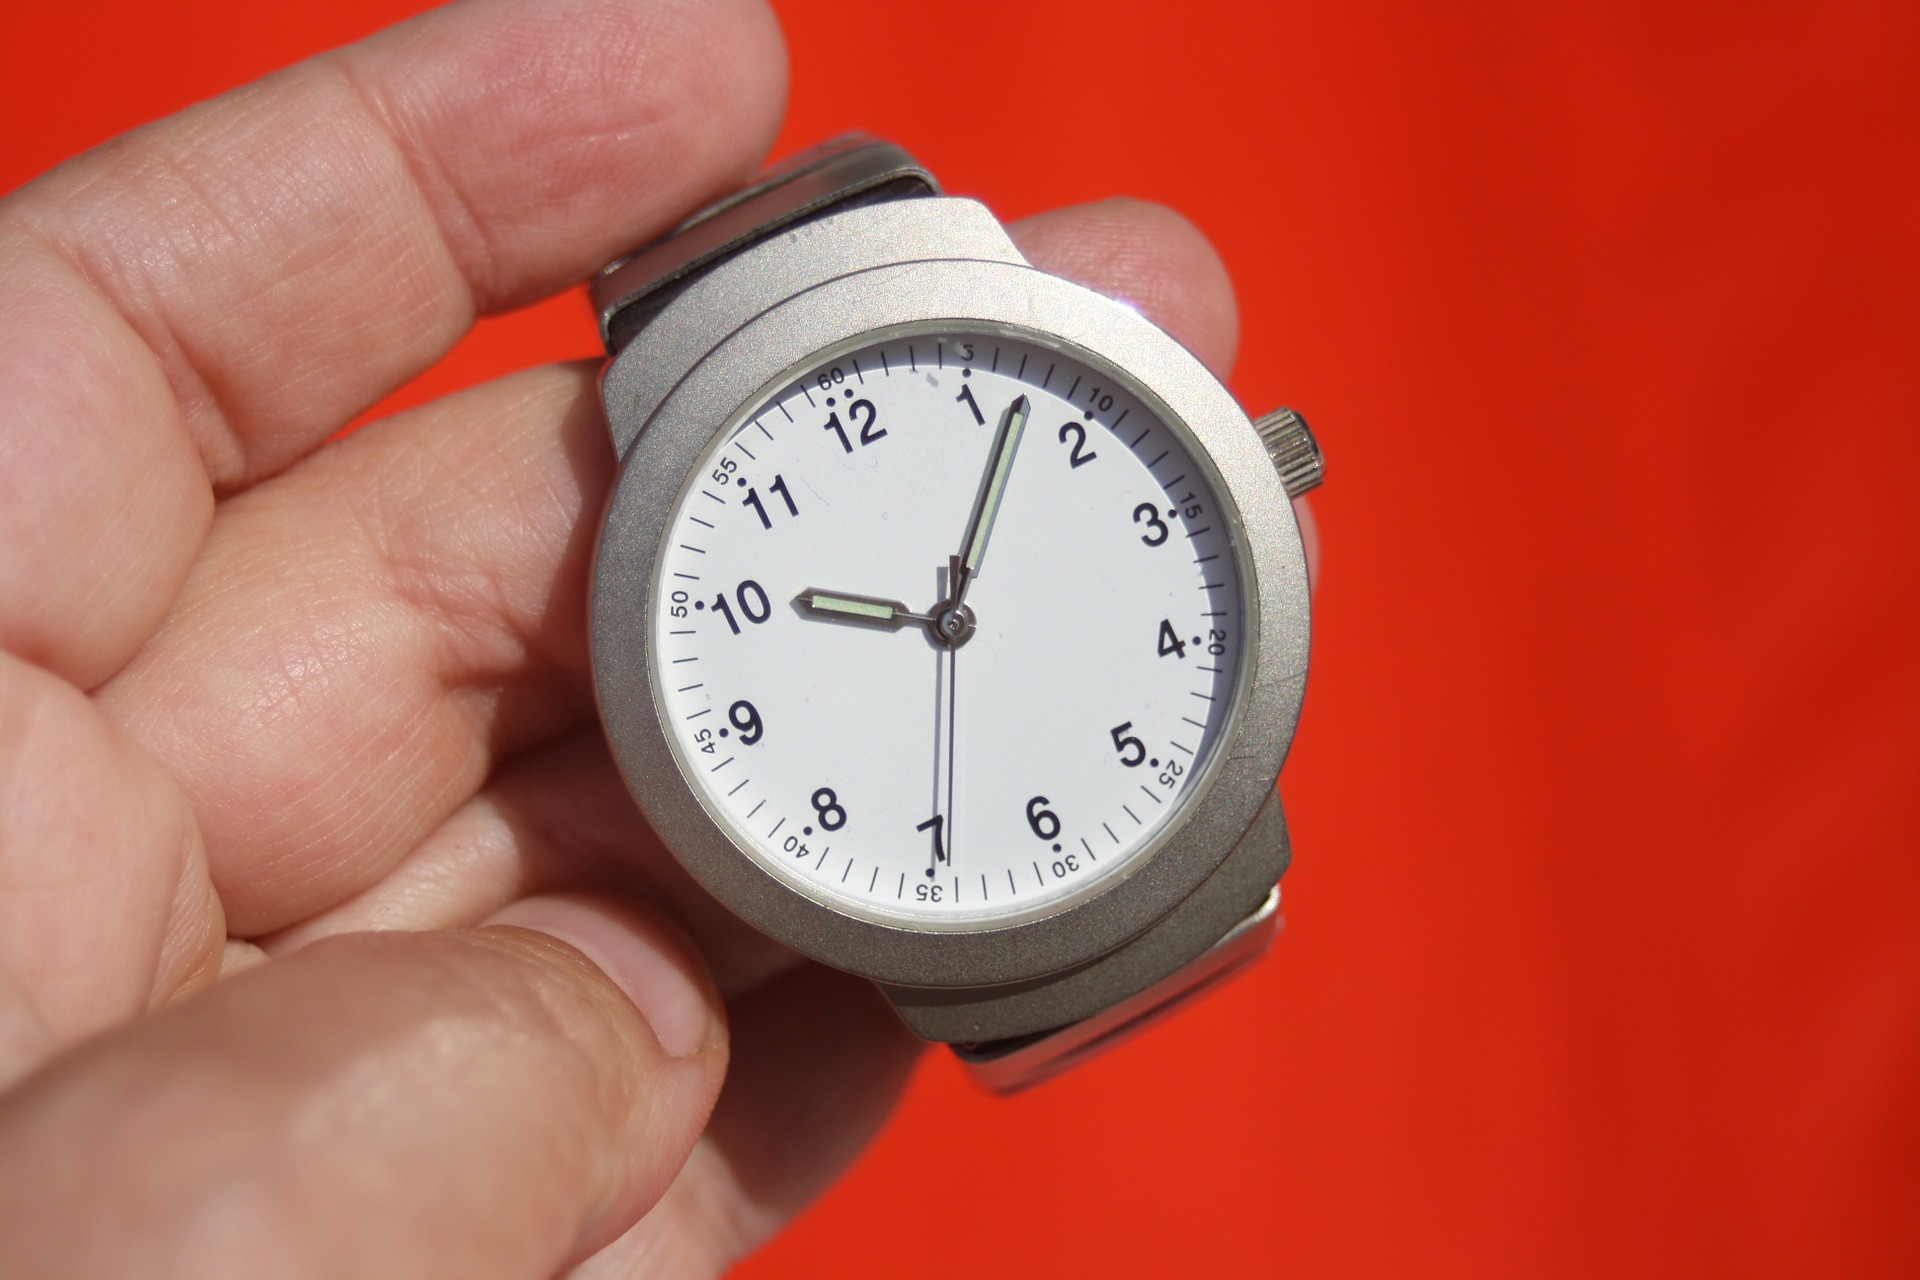 quick divorce in Florida - image of a wrist watch being held across a red background